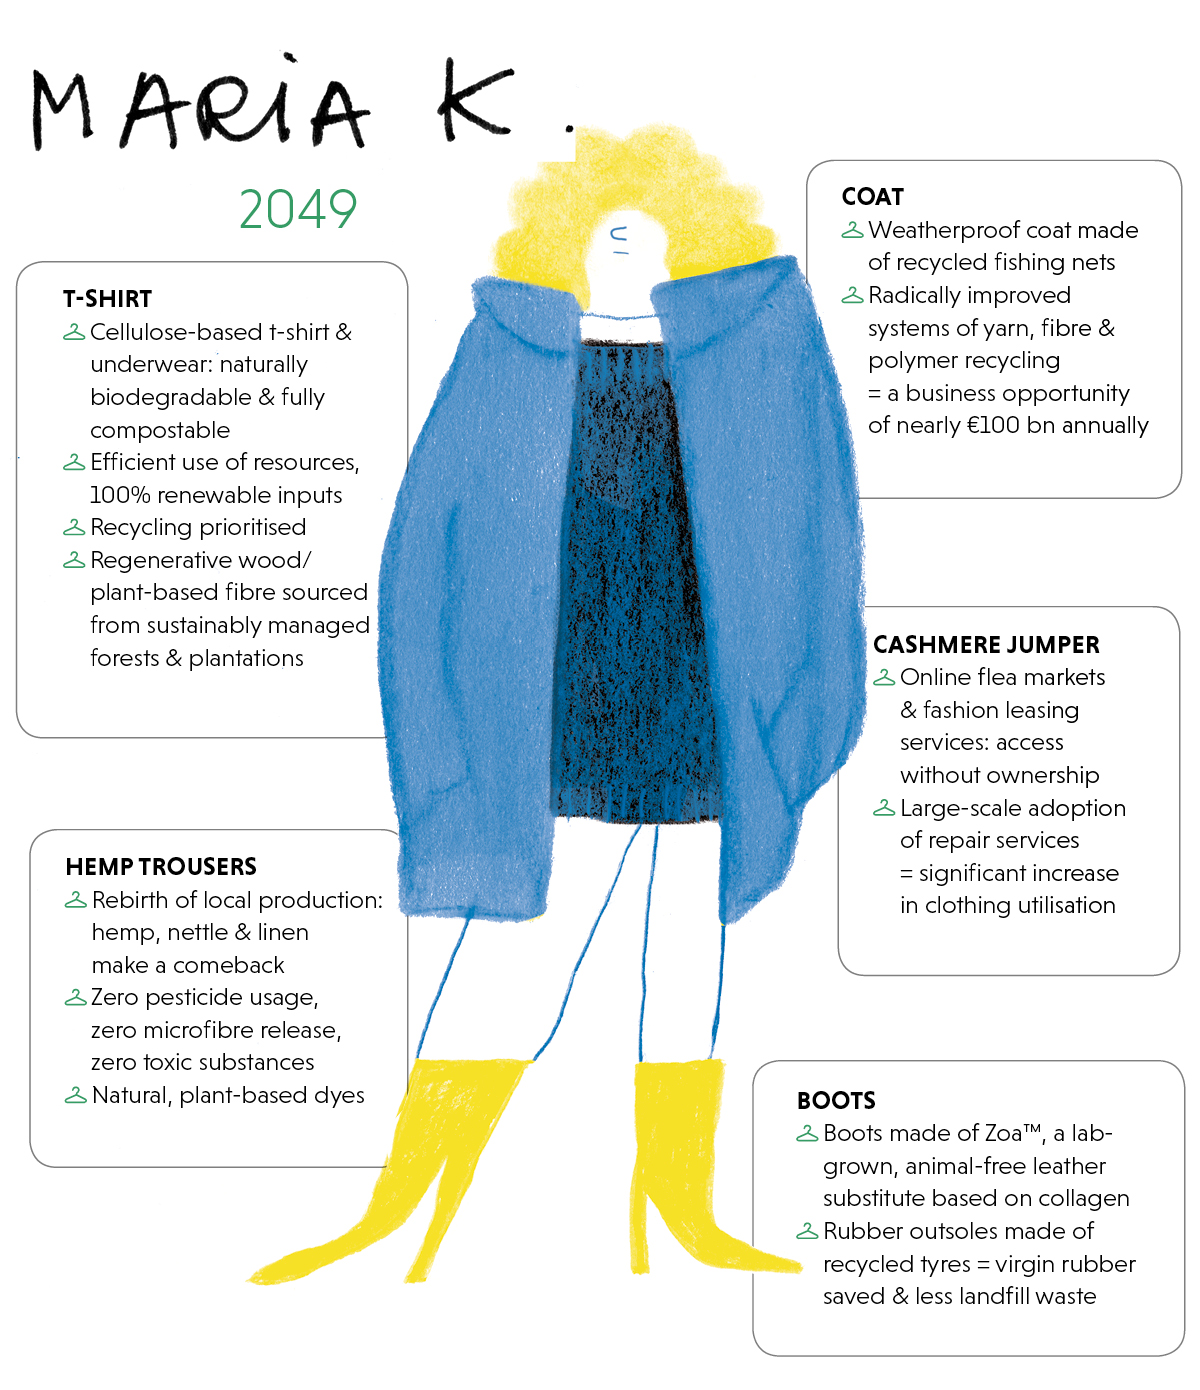 Infographic showing the outfit of Maria K in 2049 and its social, health and environmental impacts